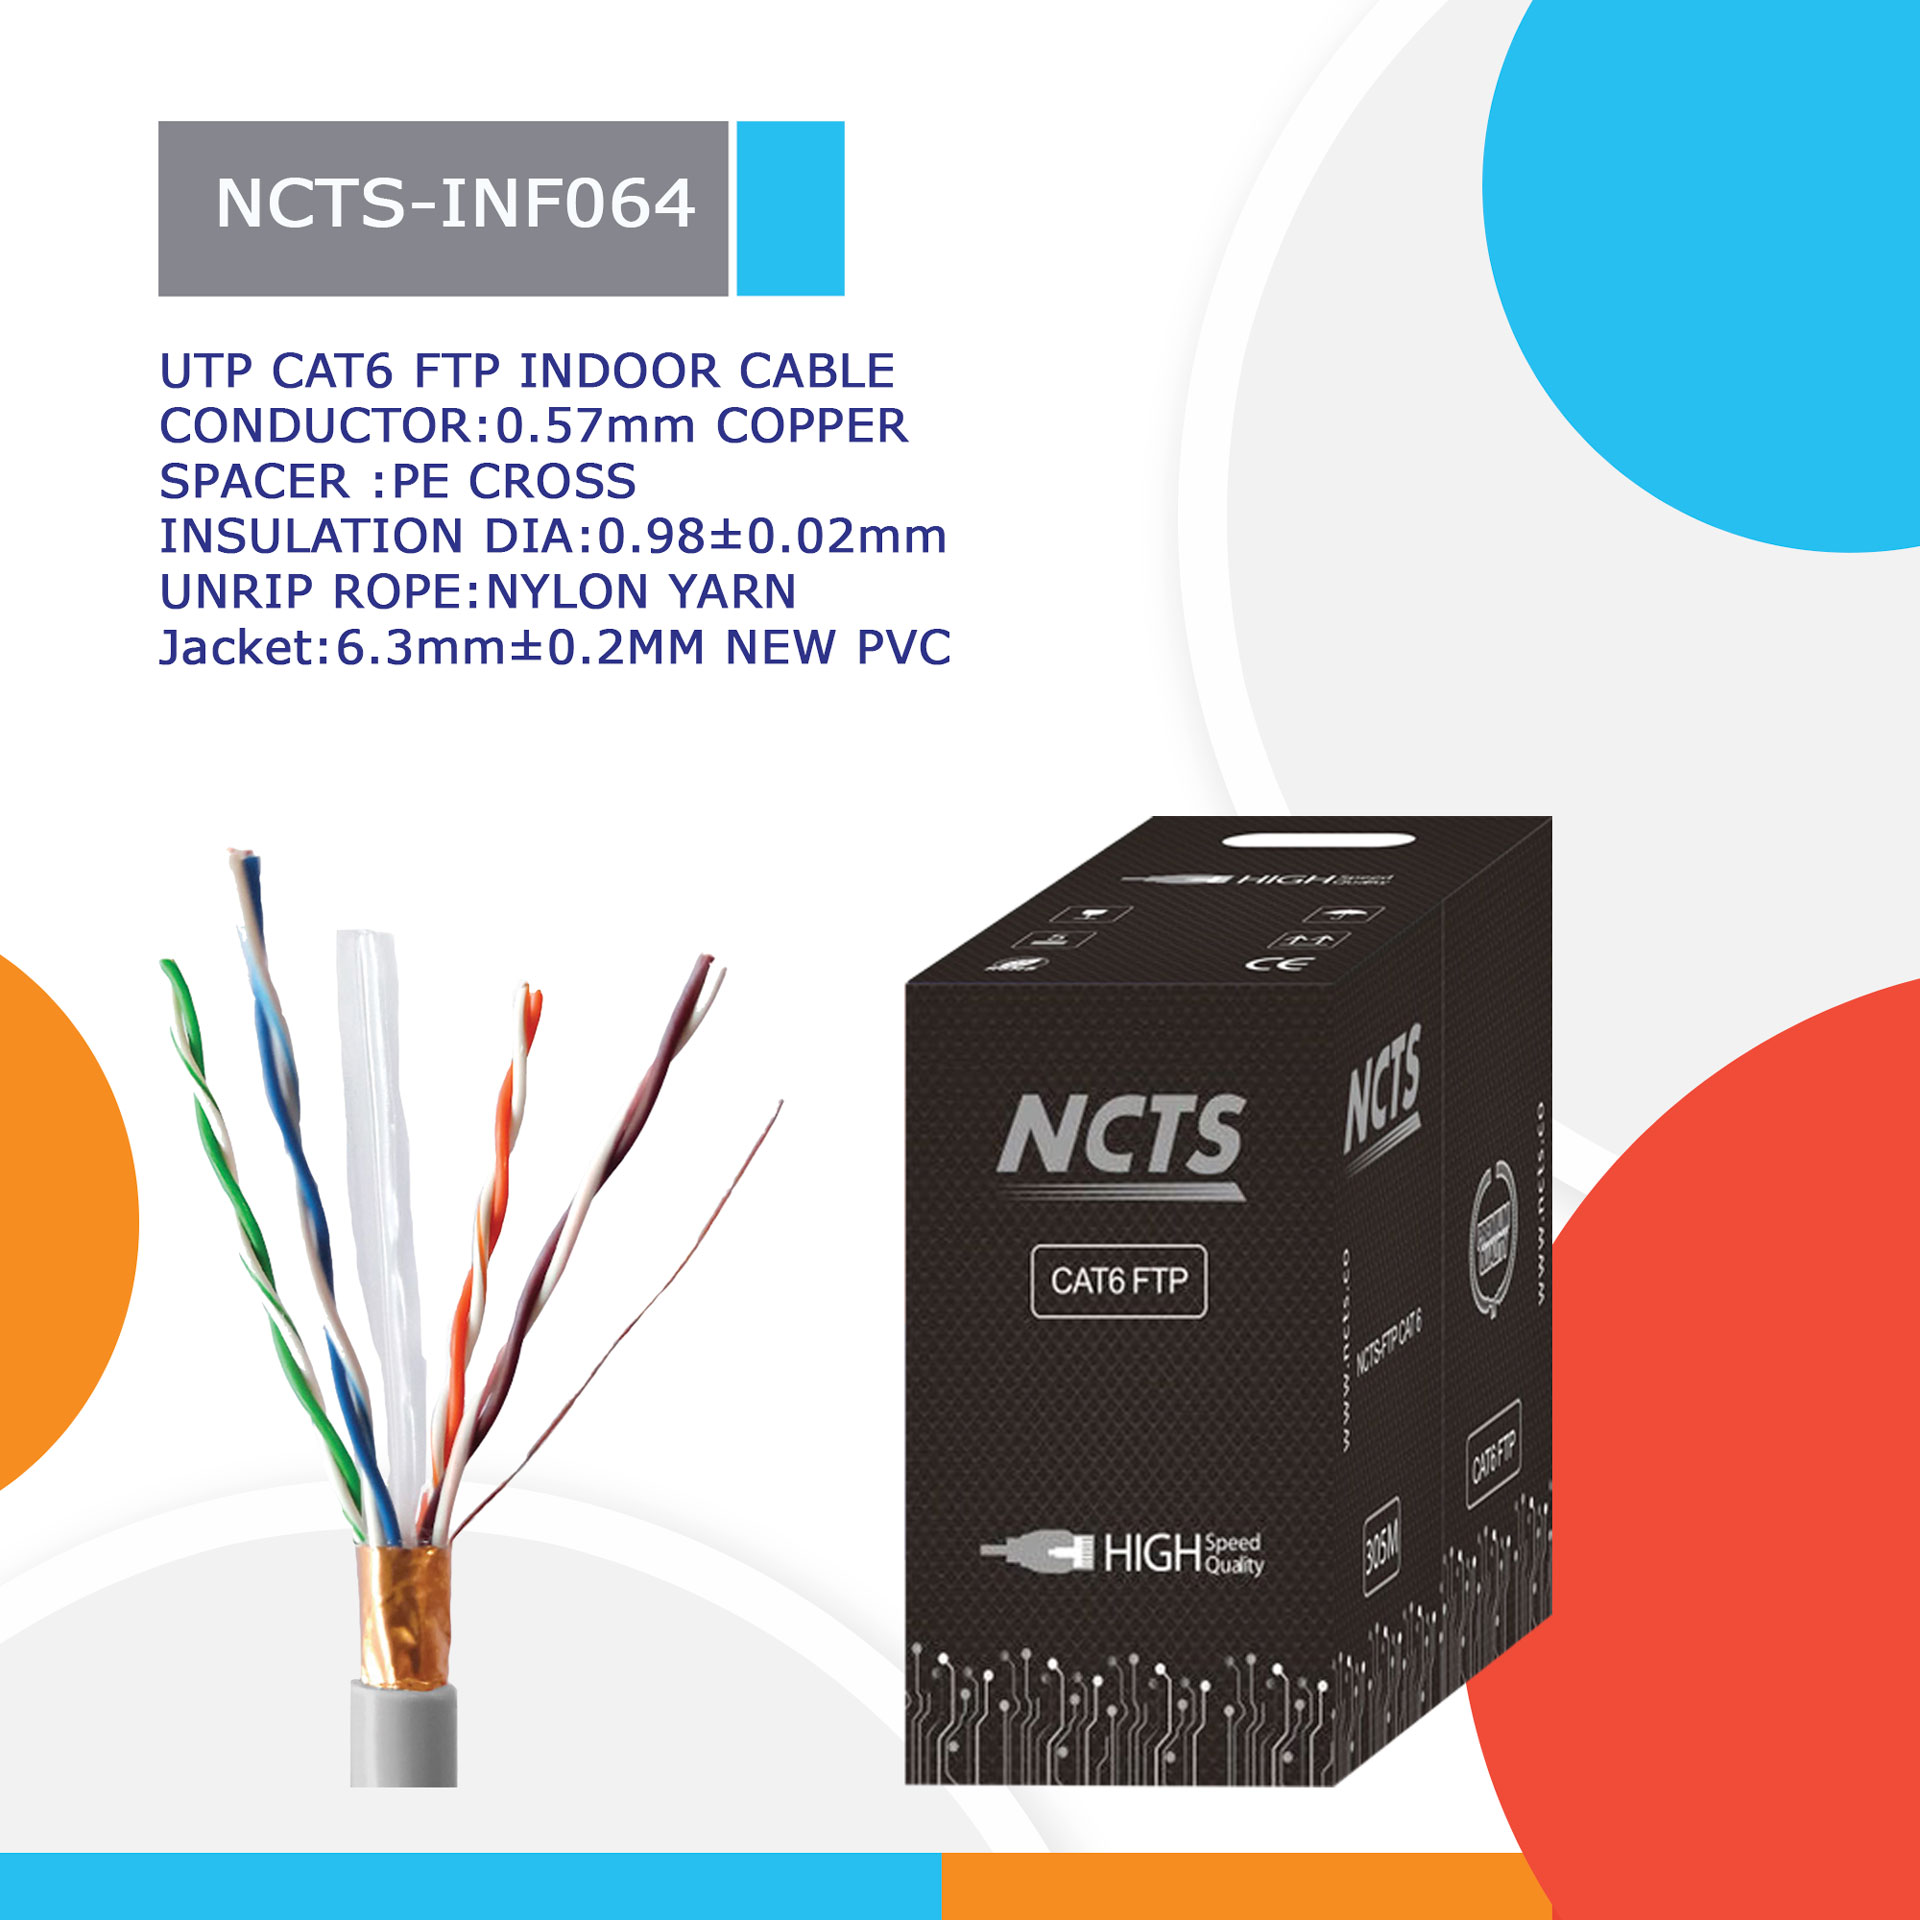 NCTS-INF064